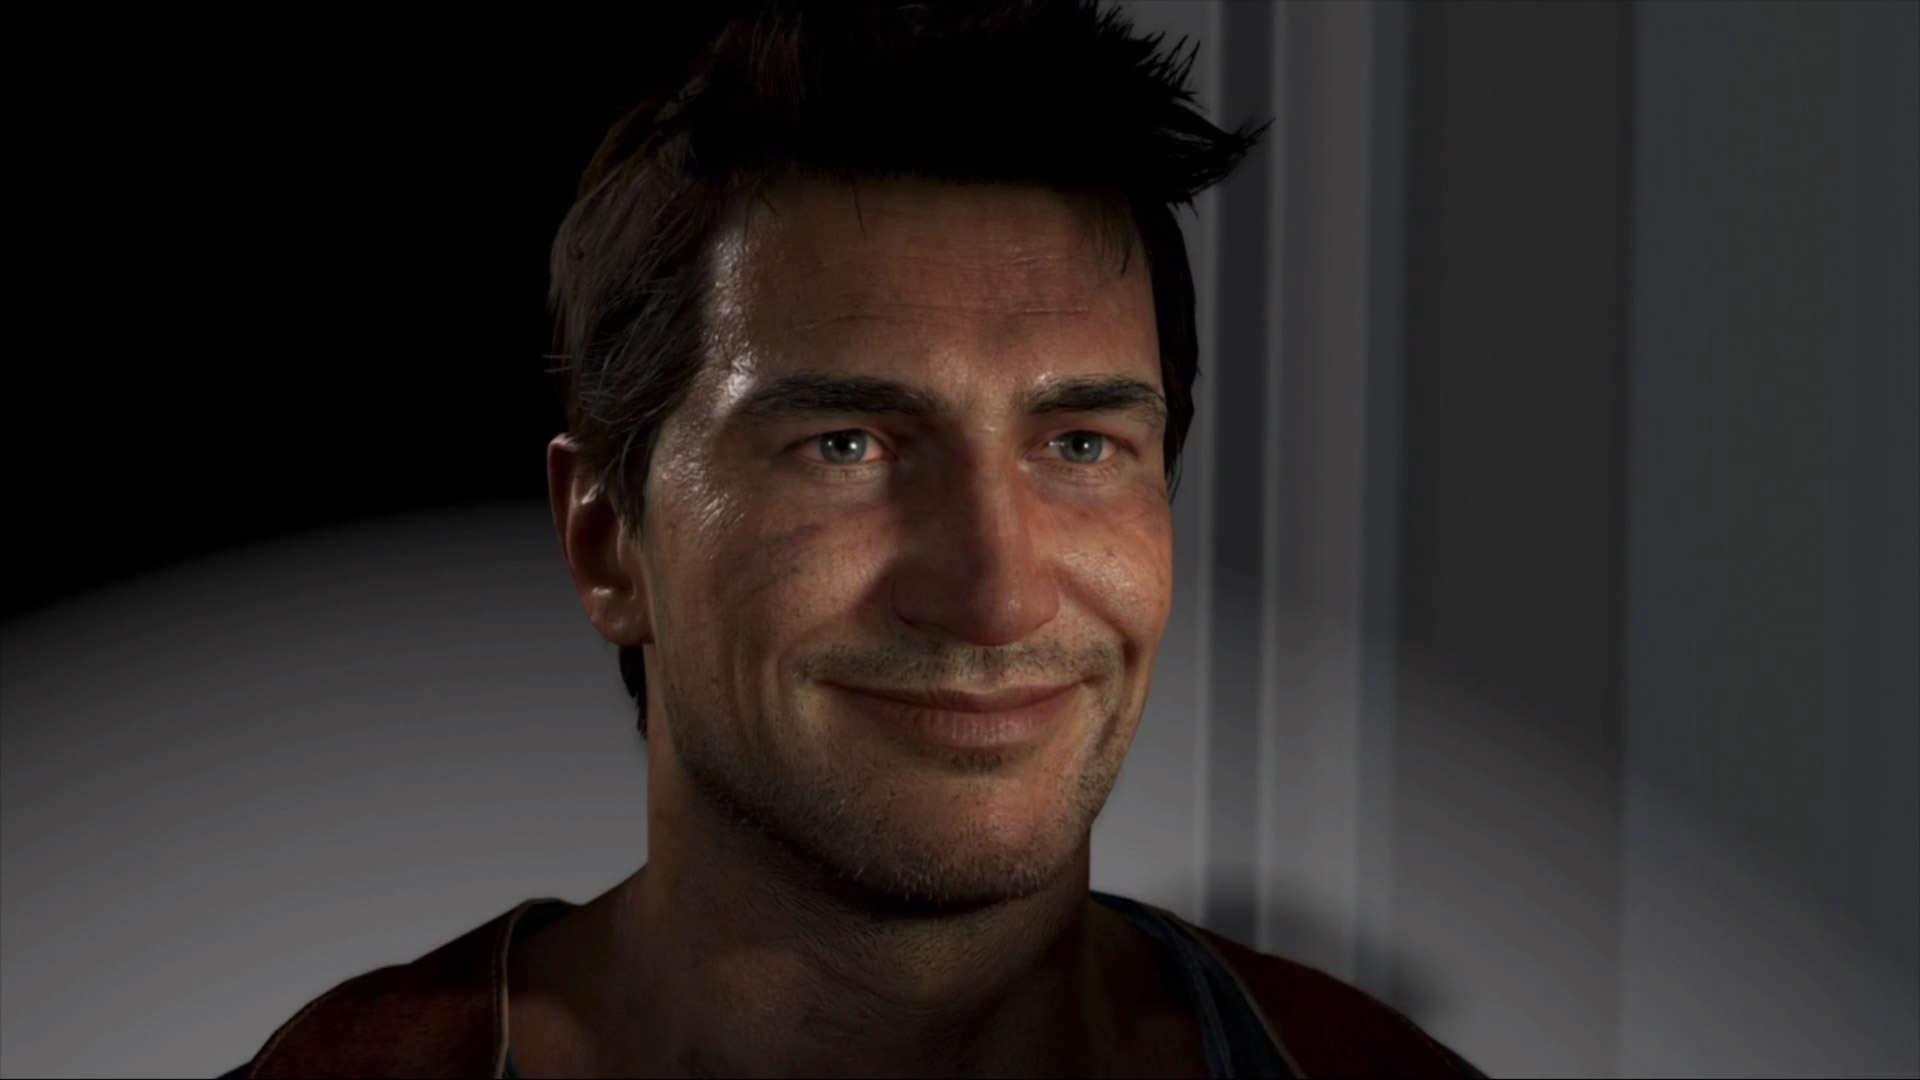 uncharted_4_drake_smile.0